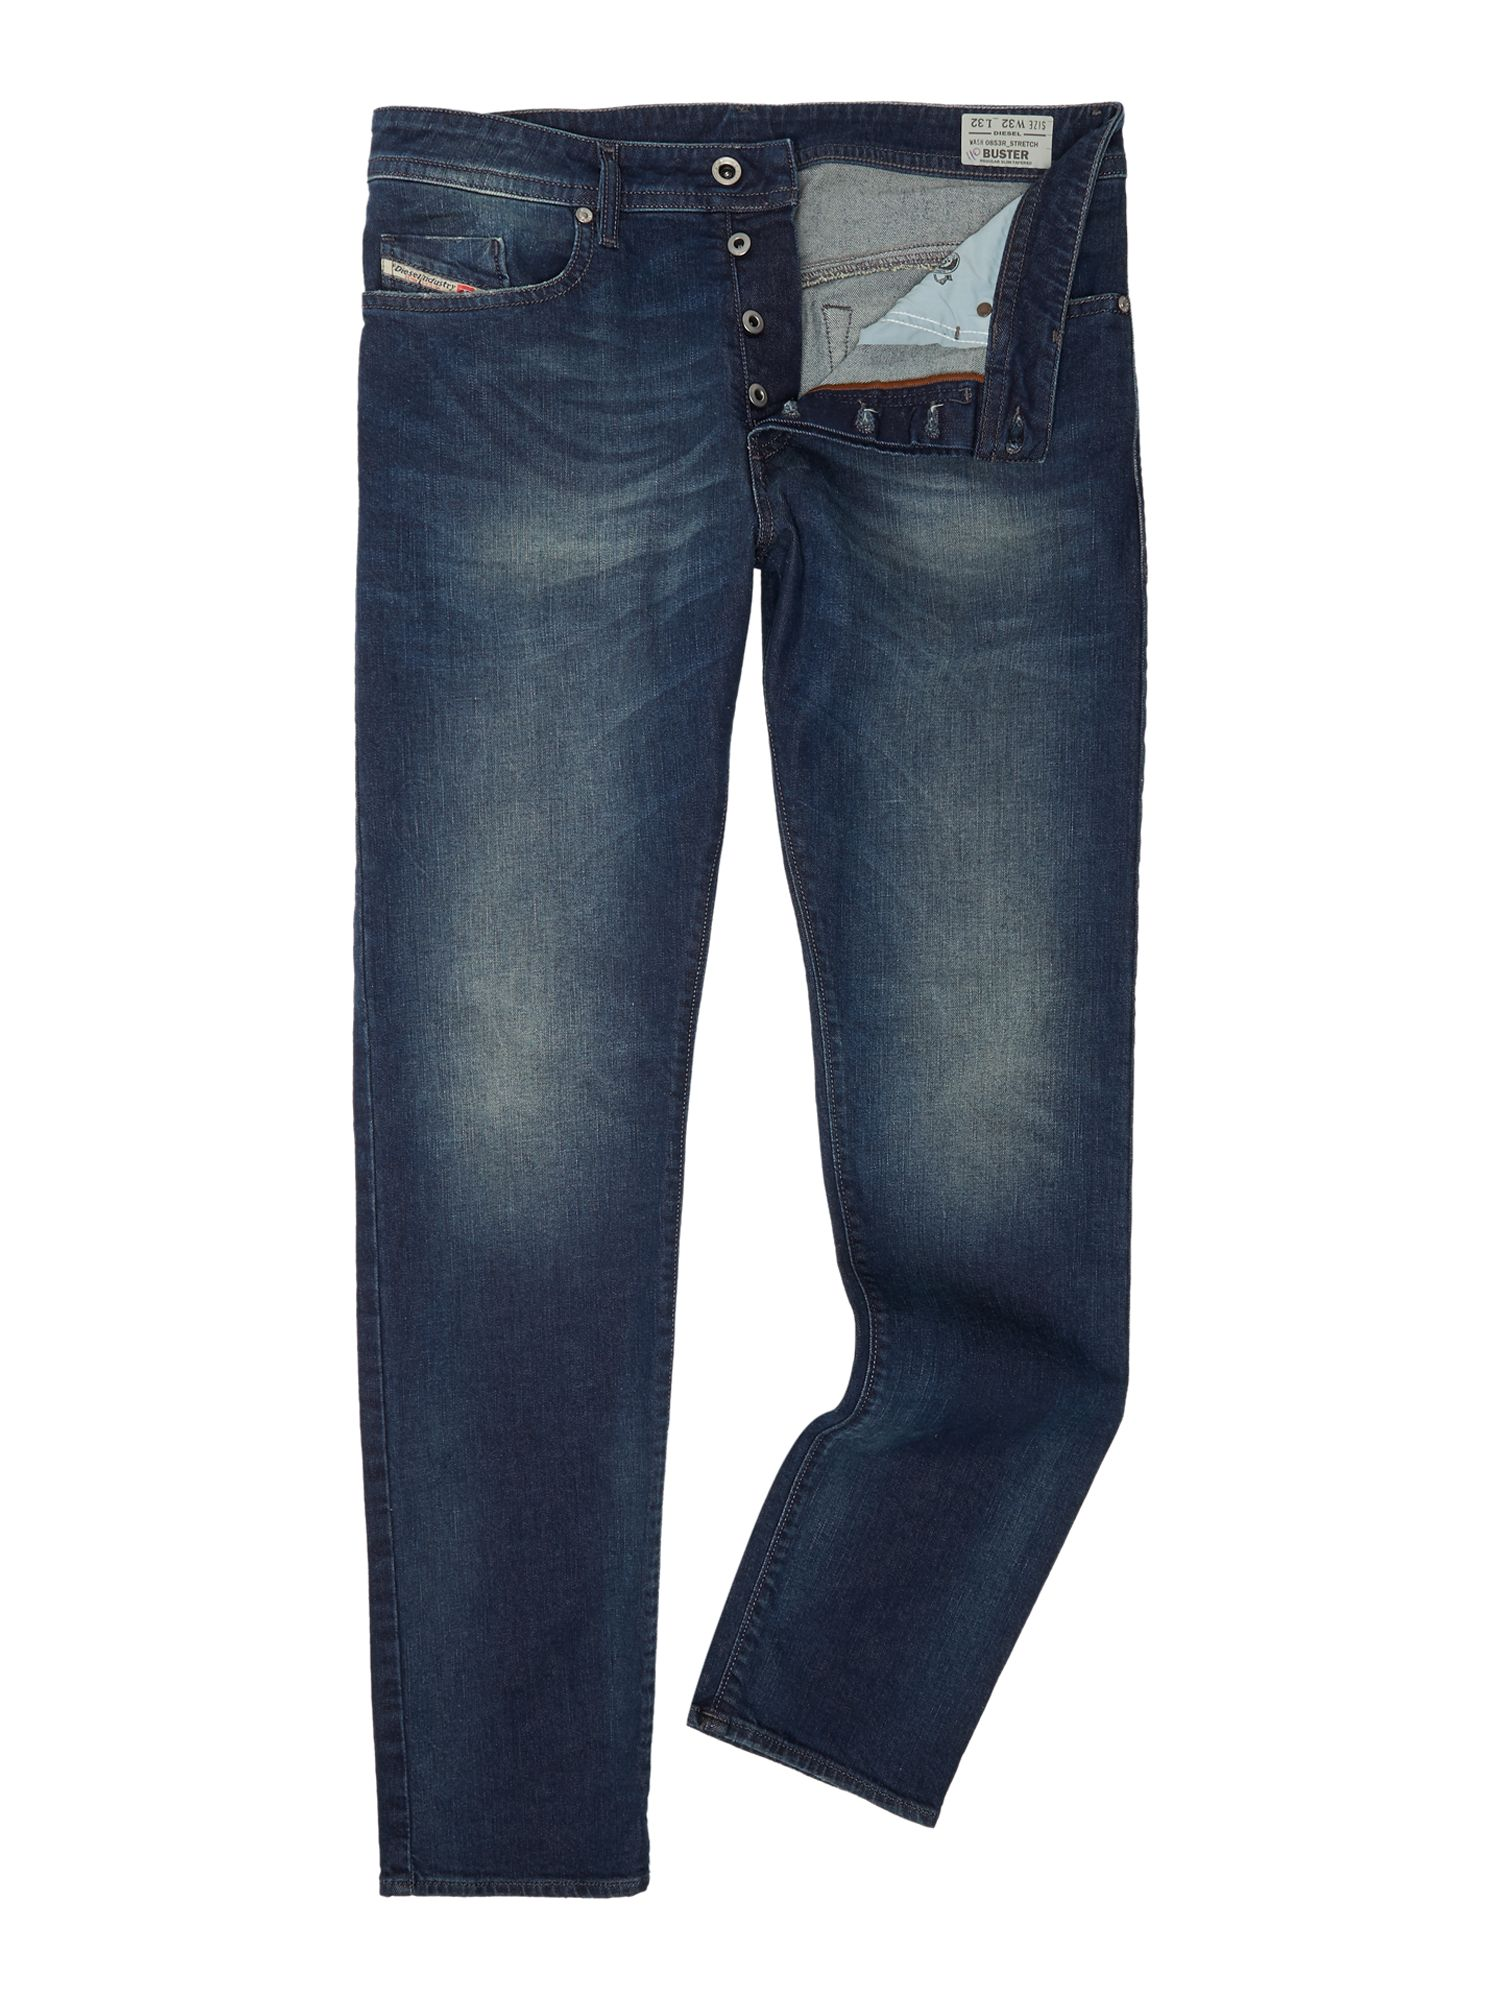 Mens Buster 853r Tapered Mid Wash Jeans, Denim Mid Wash